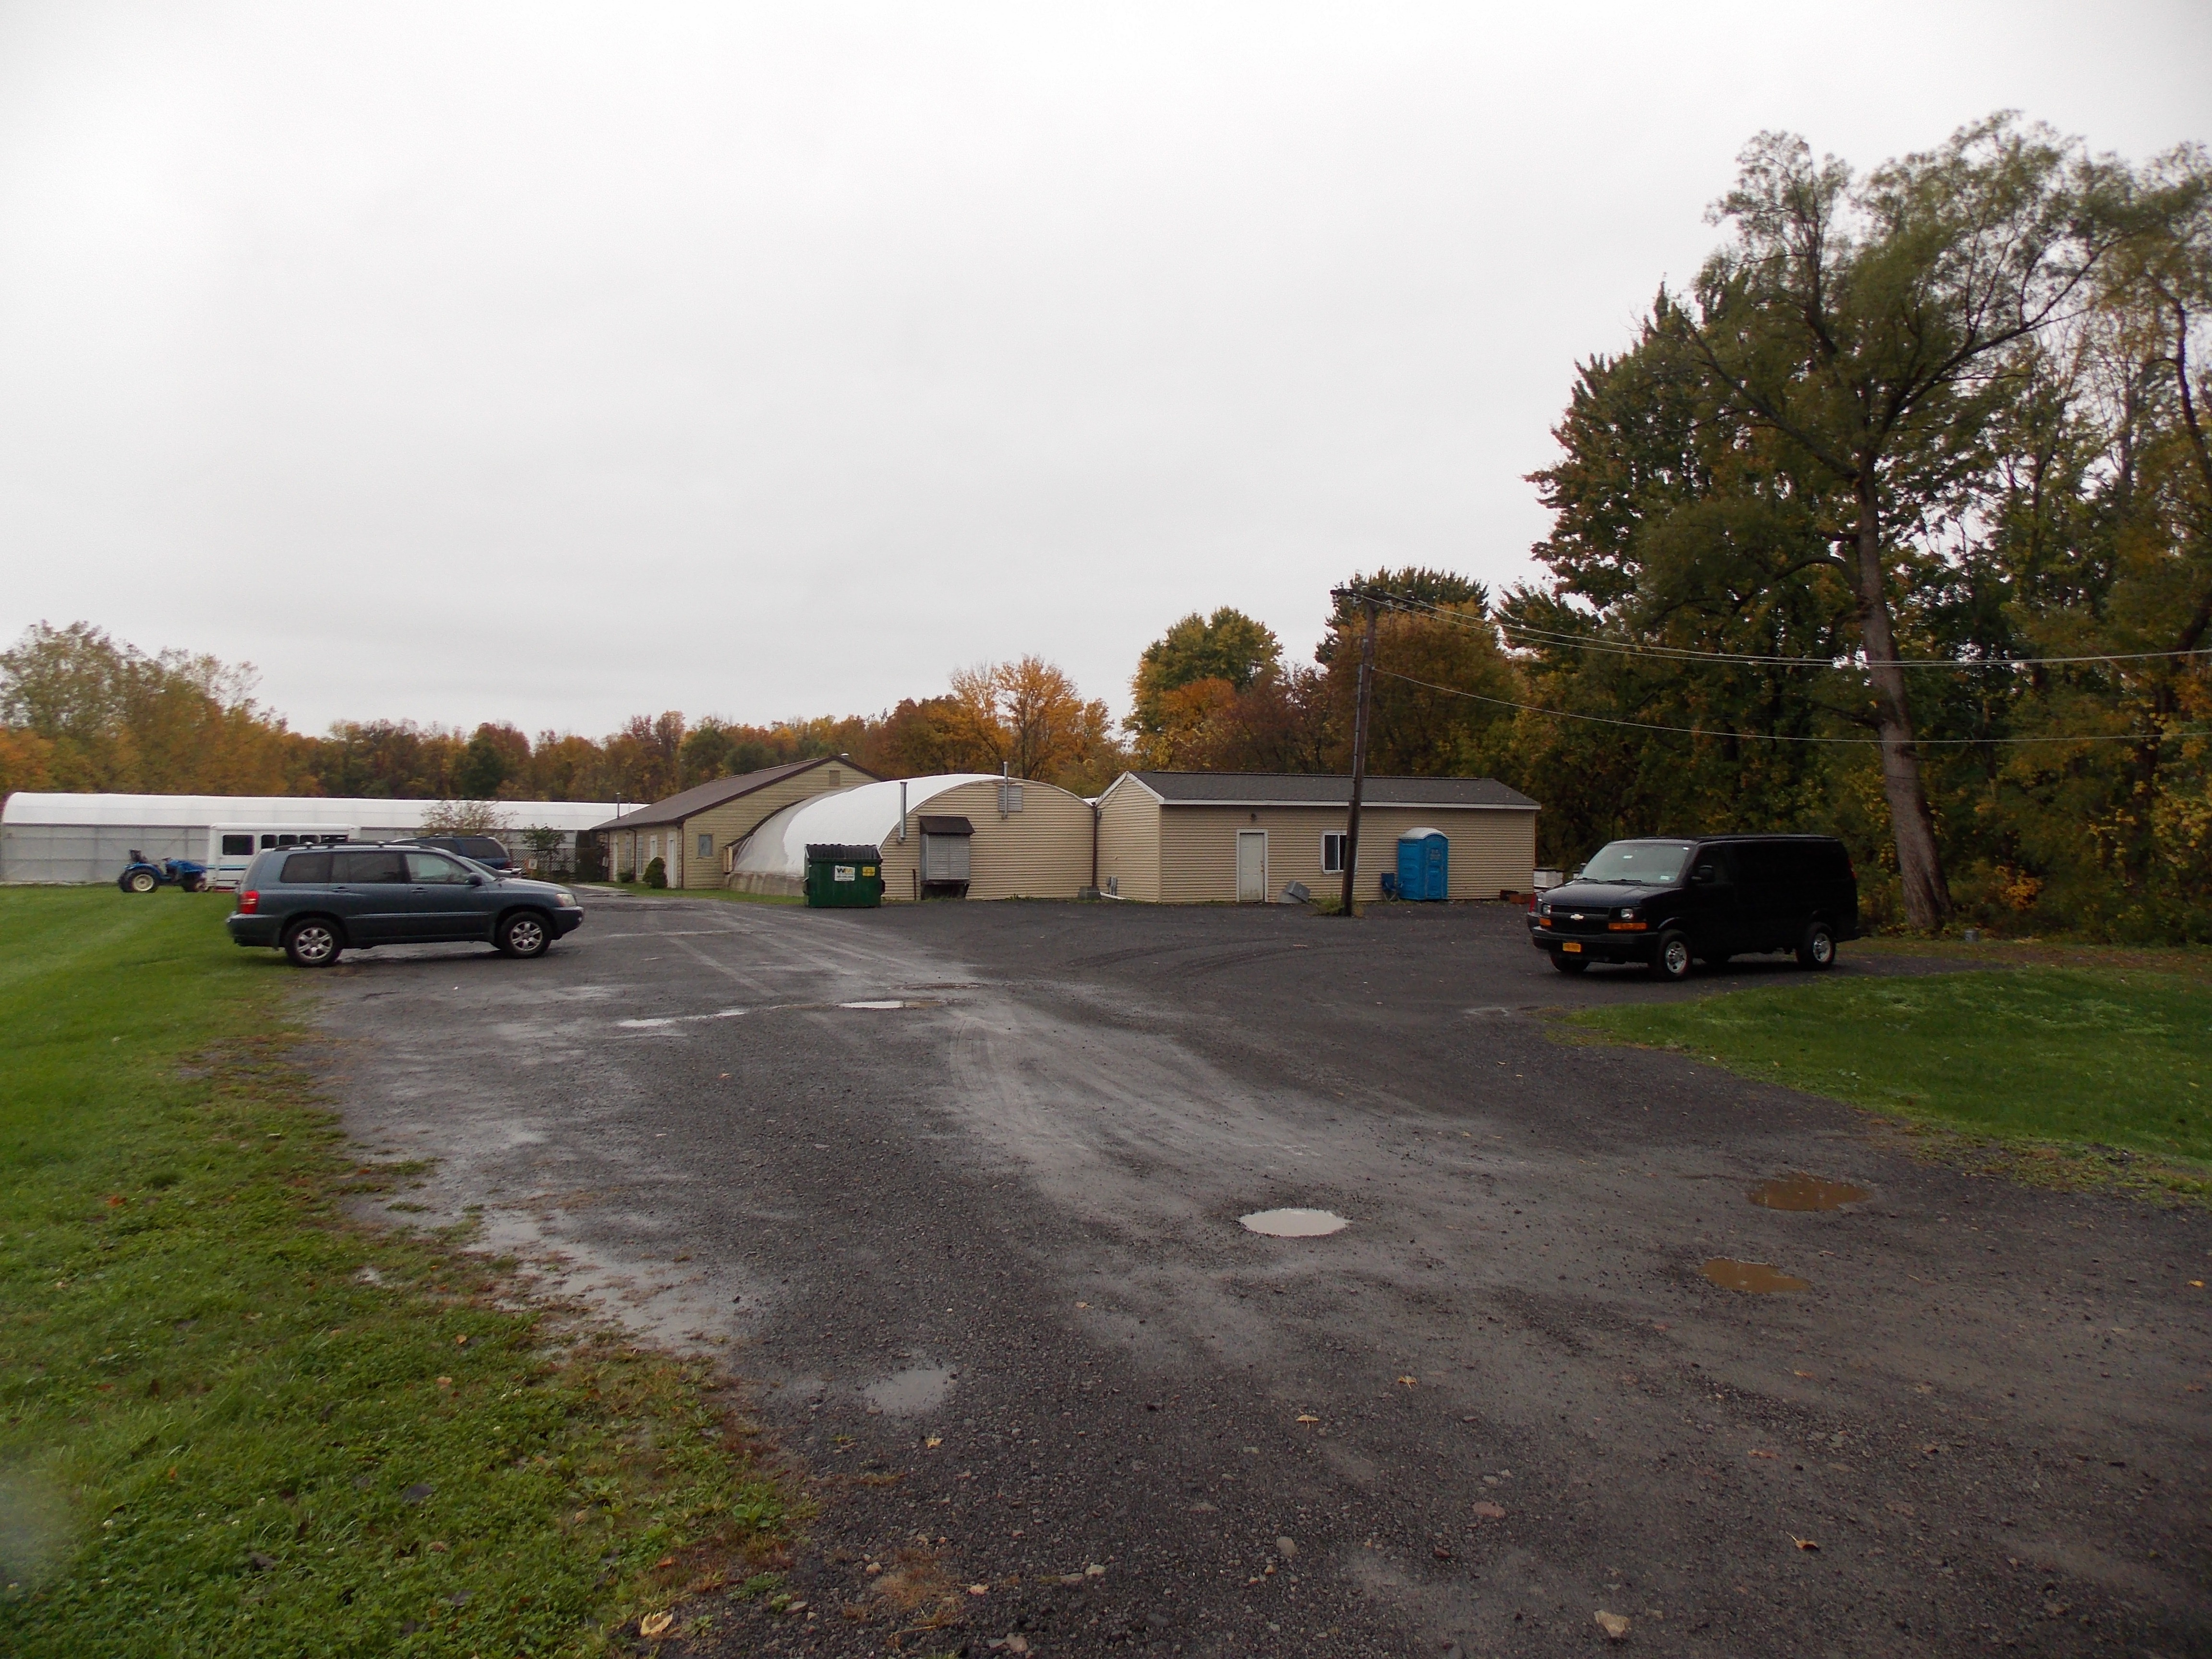 1345 Penfield Center Rd, Penfield, NY 14526